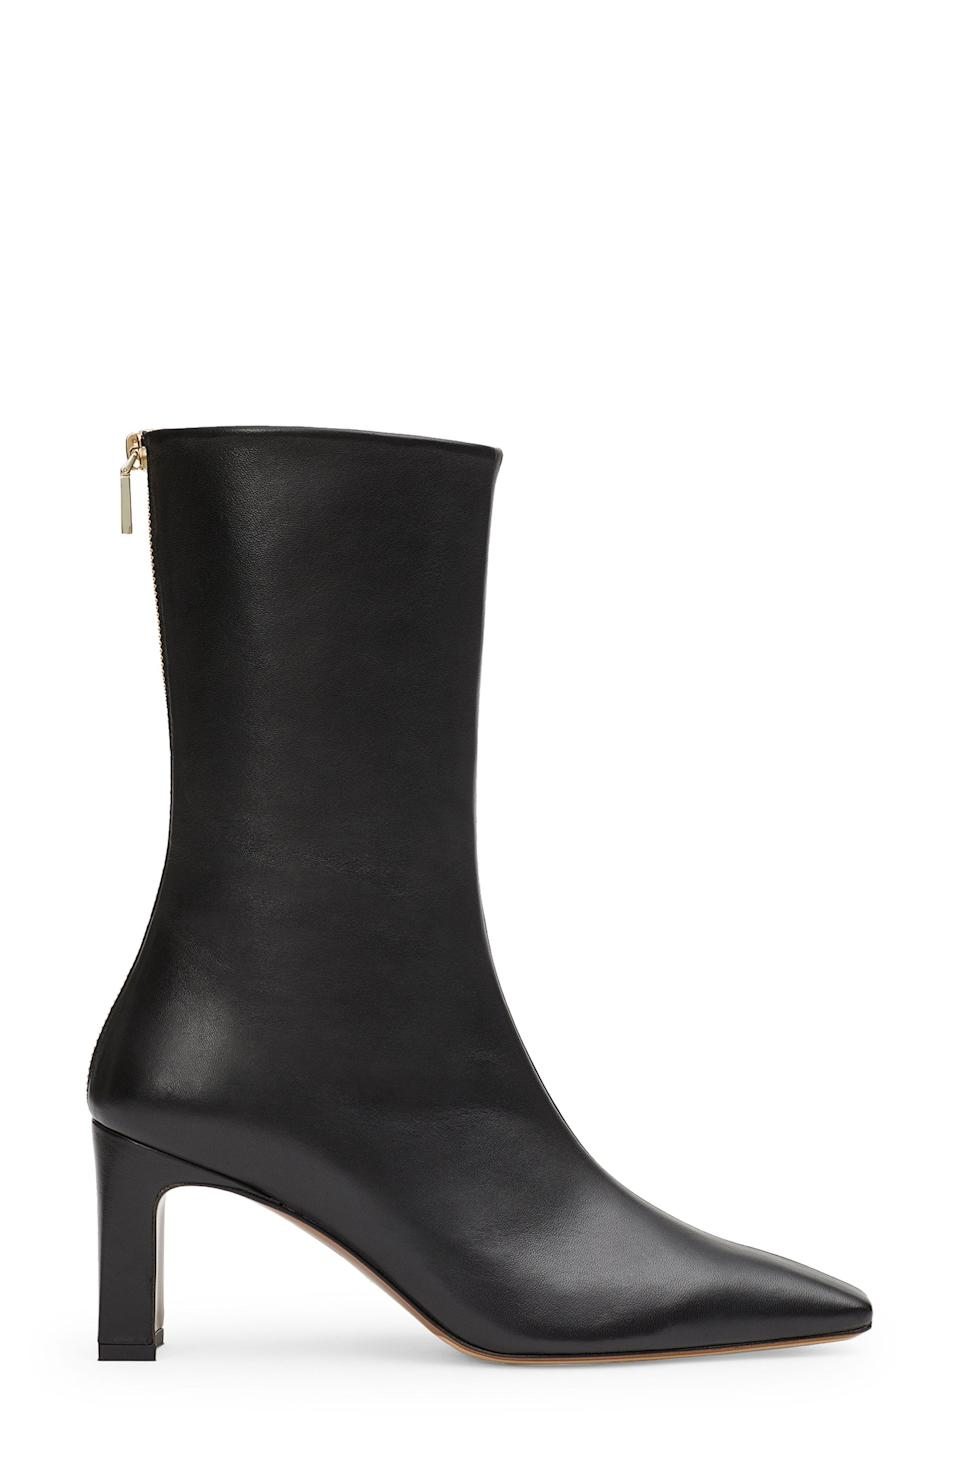 """<p><strong>LAFAYETTE 148</strong></p><p>nordstrom.com</p><p><a href=""""https://go.redirectingat.com?id=74968X1596630&url=https%3A%2F%2Fwww.nordstrom.com%2Fs%2Flafayette-148-new-york-anna-boot-women%2F5935904&sref=https%3A%2F%2Fwww.harpersbazaar.com%2Ffashion%2Ftrends%2Fg36946278%2Fnordstrom-anniversary-sale-fashion%2F"""" rel=""""nofollow noopener"""" target=""""_blank"""" data-ylk=""""slk:Shop Now"""" class=""""link rapid-noclick-resp"""">Shop Now</a></p><p><strong>Sale: $430</strong></p><p><strong>After Sale: $648</strong></p><p>These smooth-as-butter leather boots can be styled with just about everything and add sharpness to any look. </p>"""